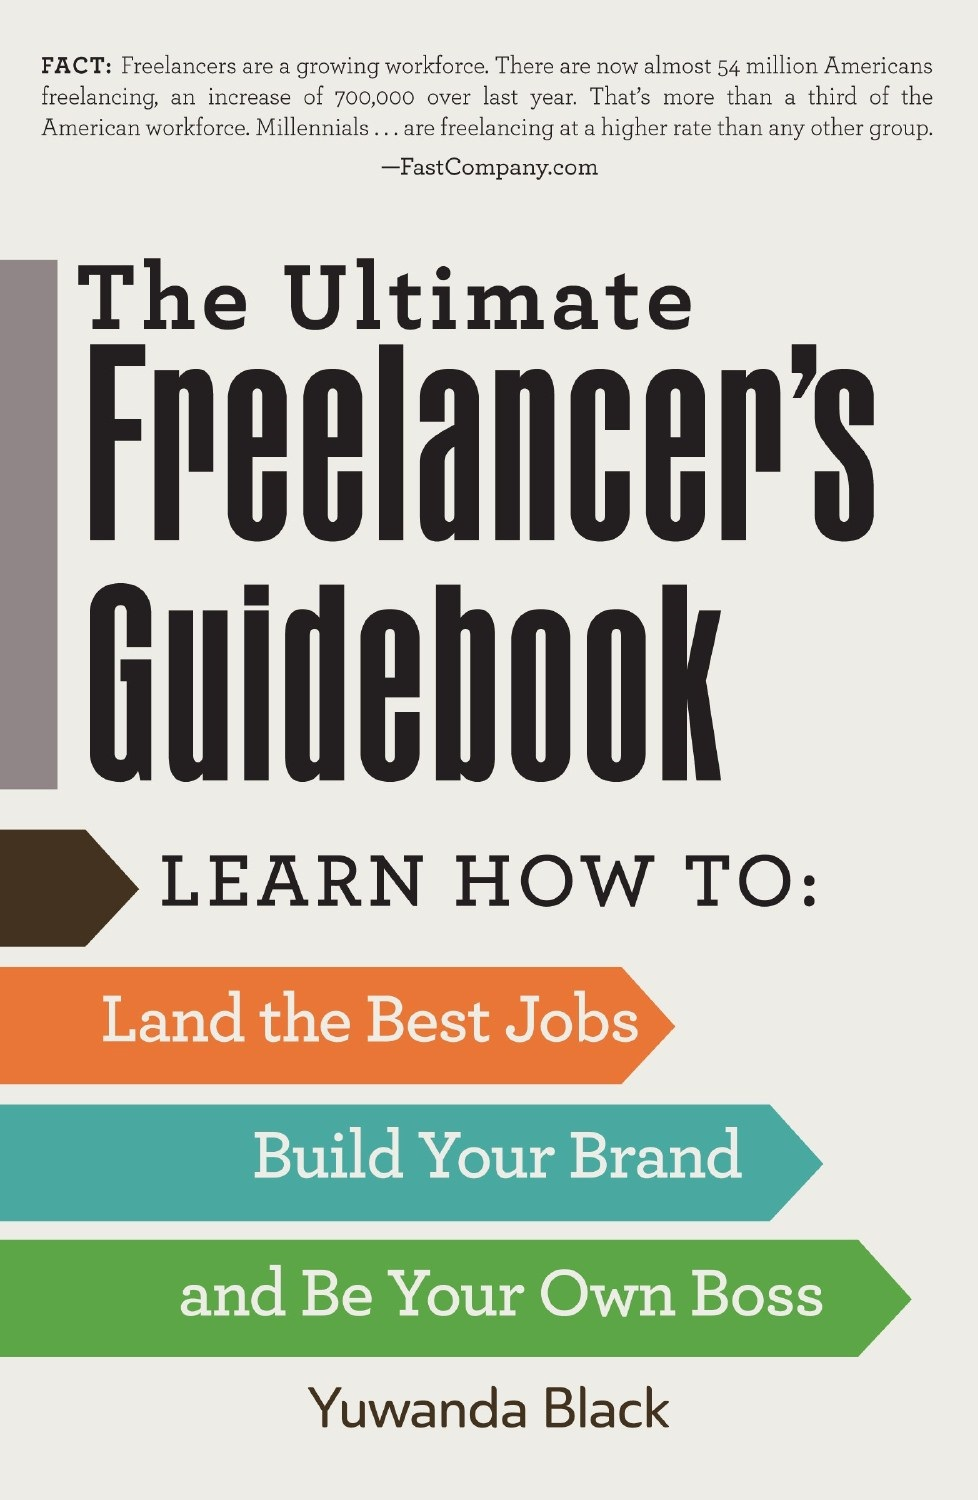 The Ultimate Freelancer's Guidebook on Amazon